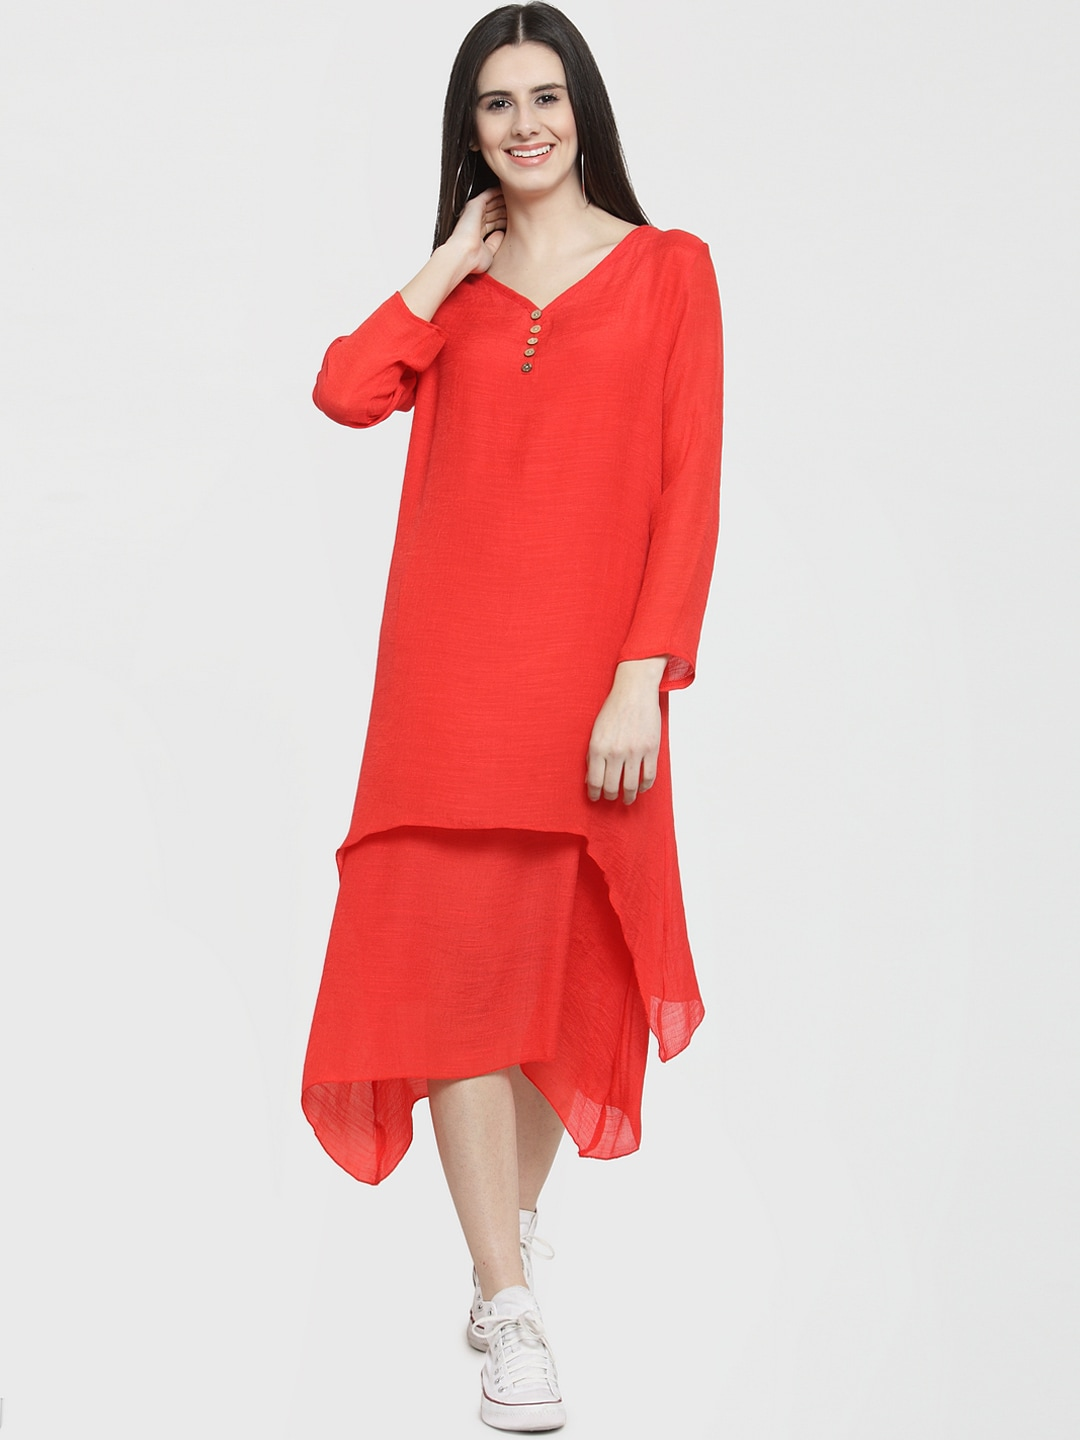 af4e82e59 Red Dress - Buy Trendy Red Colour Dresses Online in India